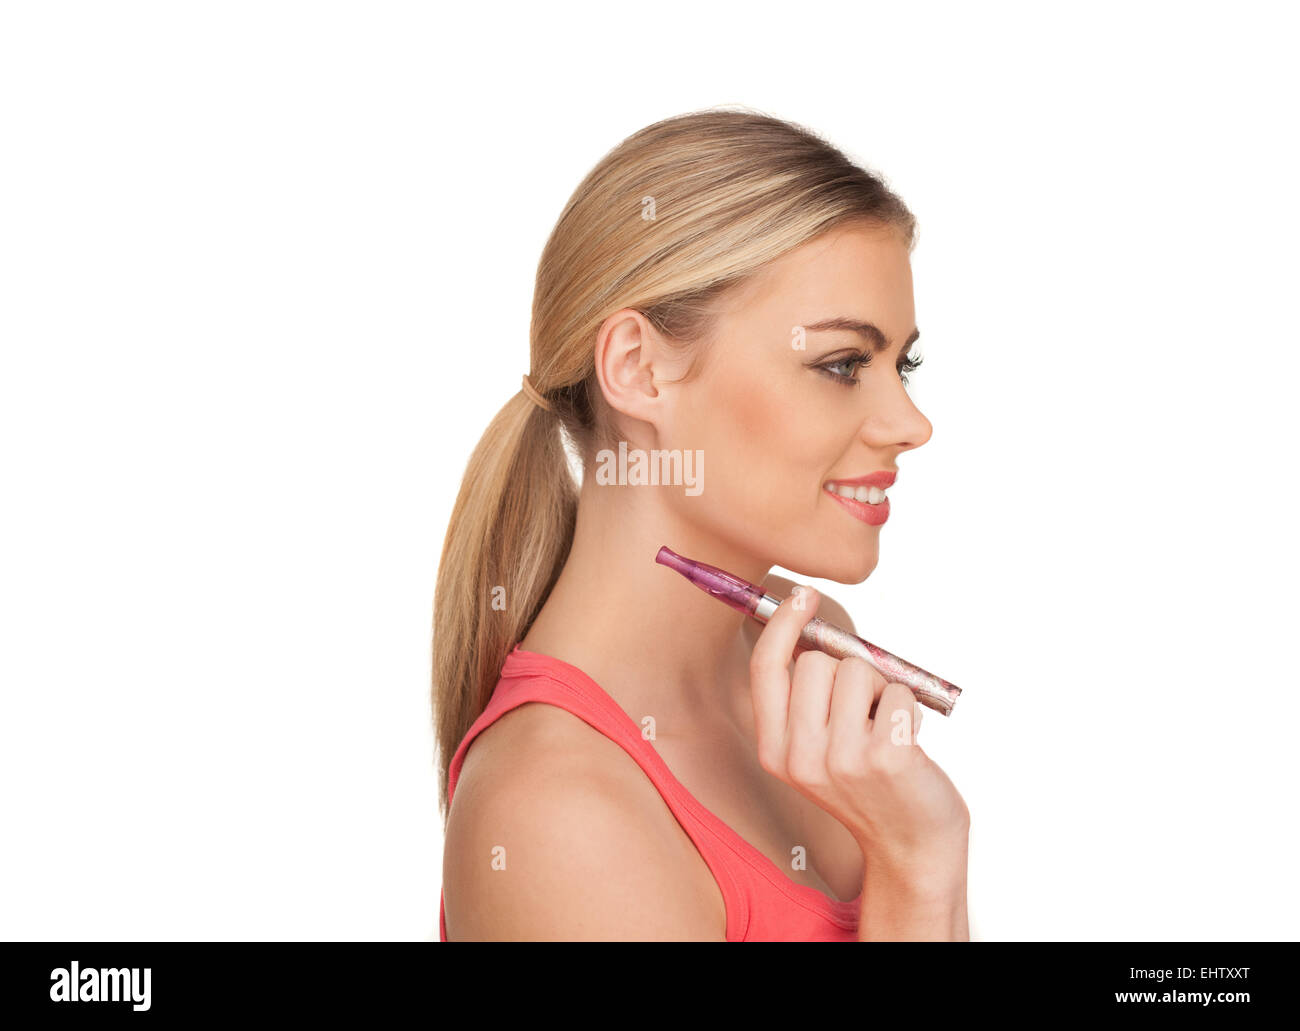 Young Woman Smokin Electic Cigarette Stock Photo